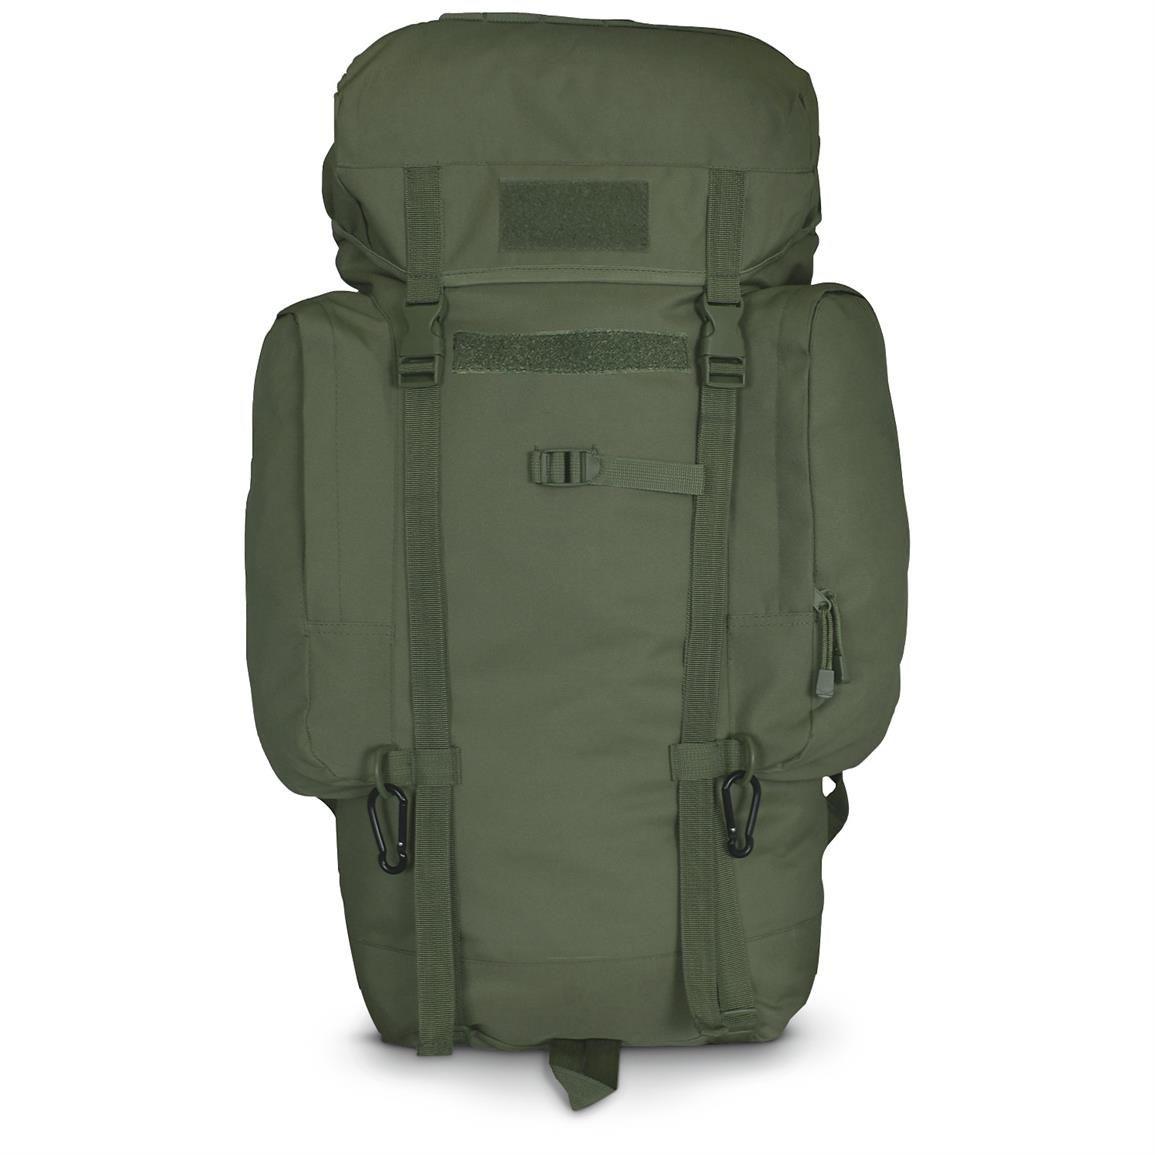 Fox Tactical Rio Grande Pack, 45 liters, Olive Drab